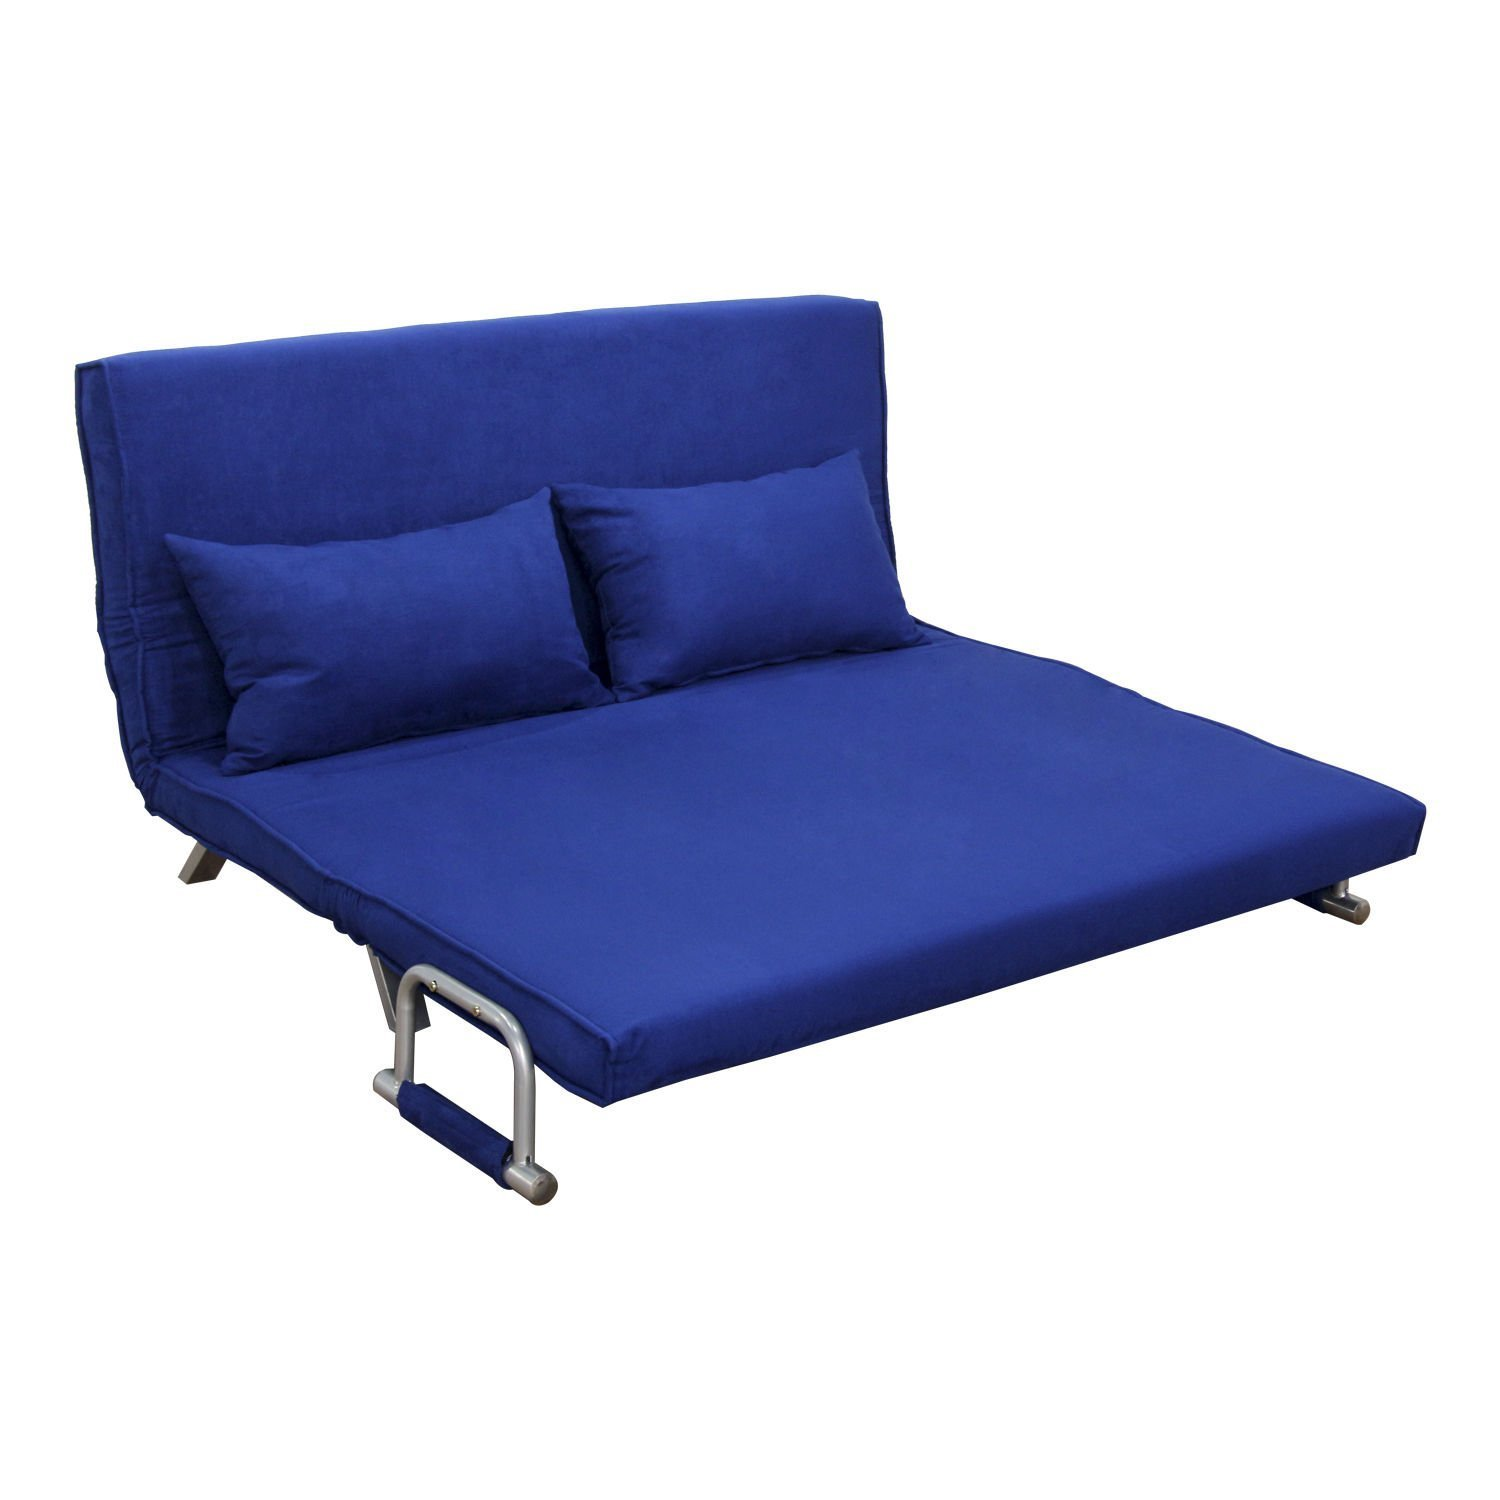 "Hom 61"" Folding Futon Sleeper Couch Sofa Bed Blue Amazon"